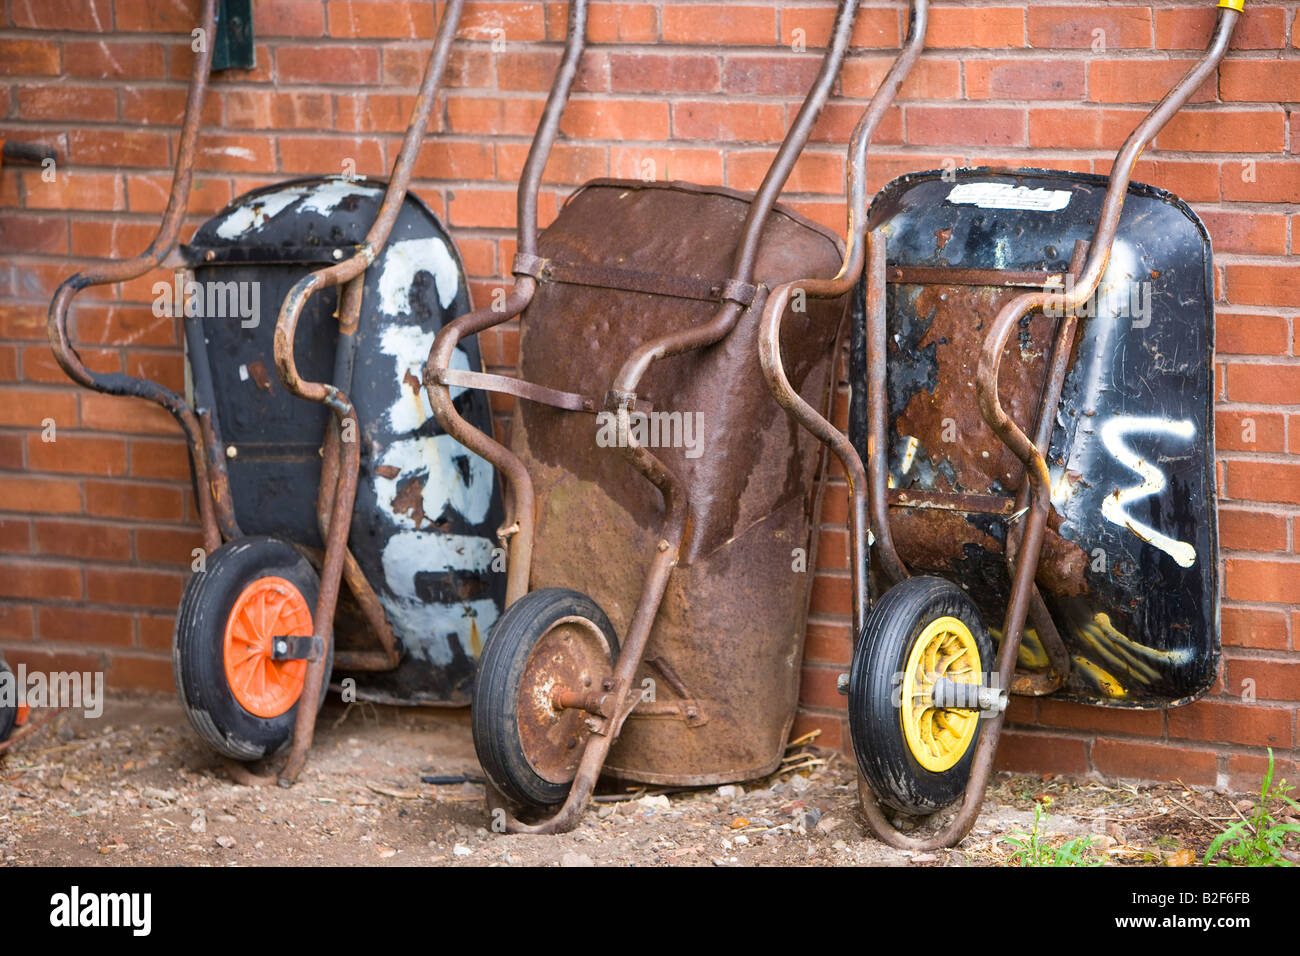 3 wheelbarrows against a wall in an allotment - Stock Image